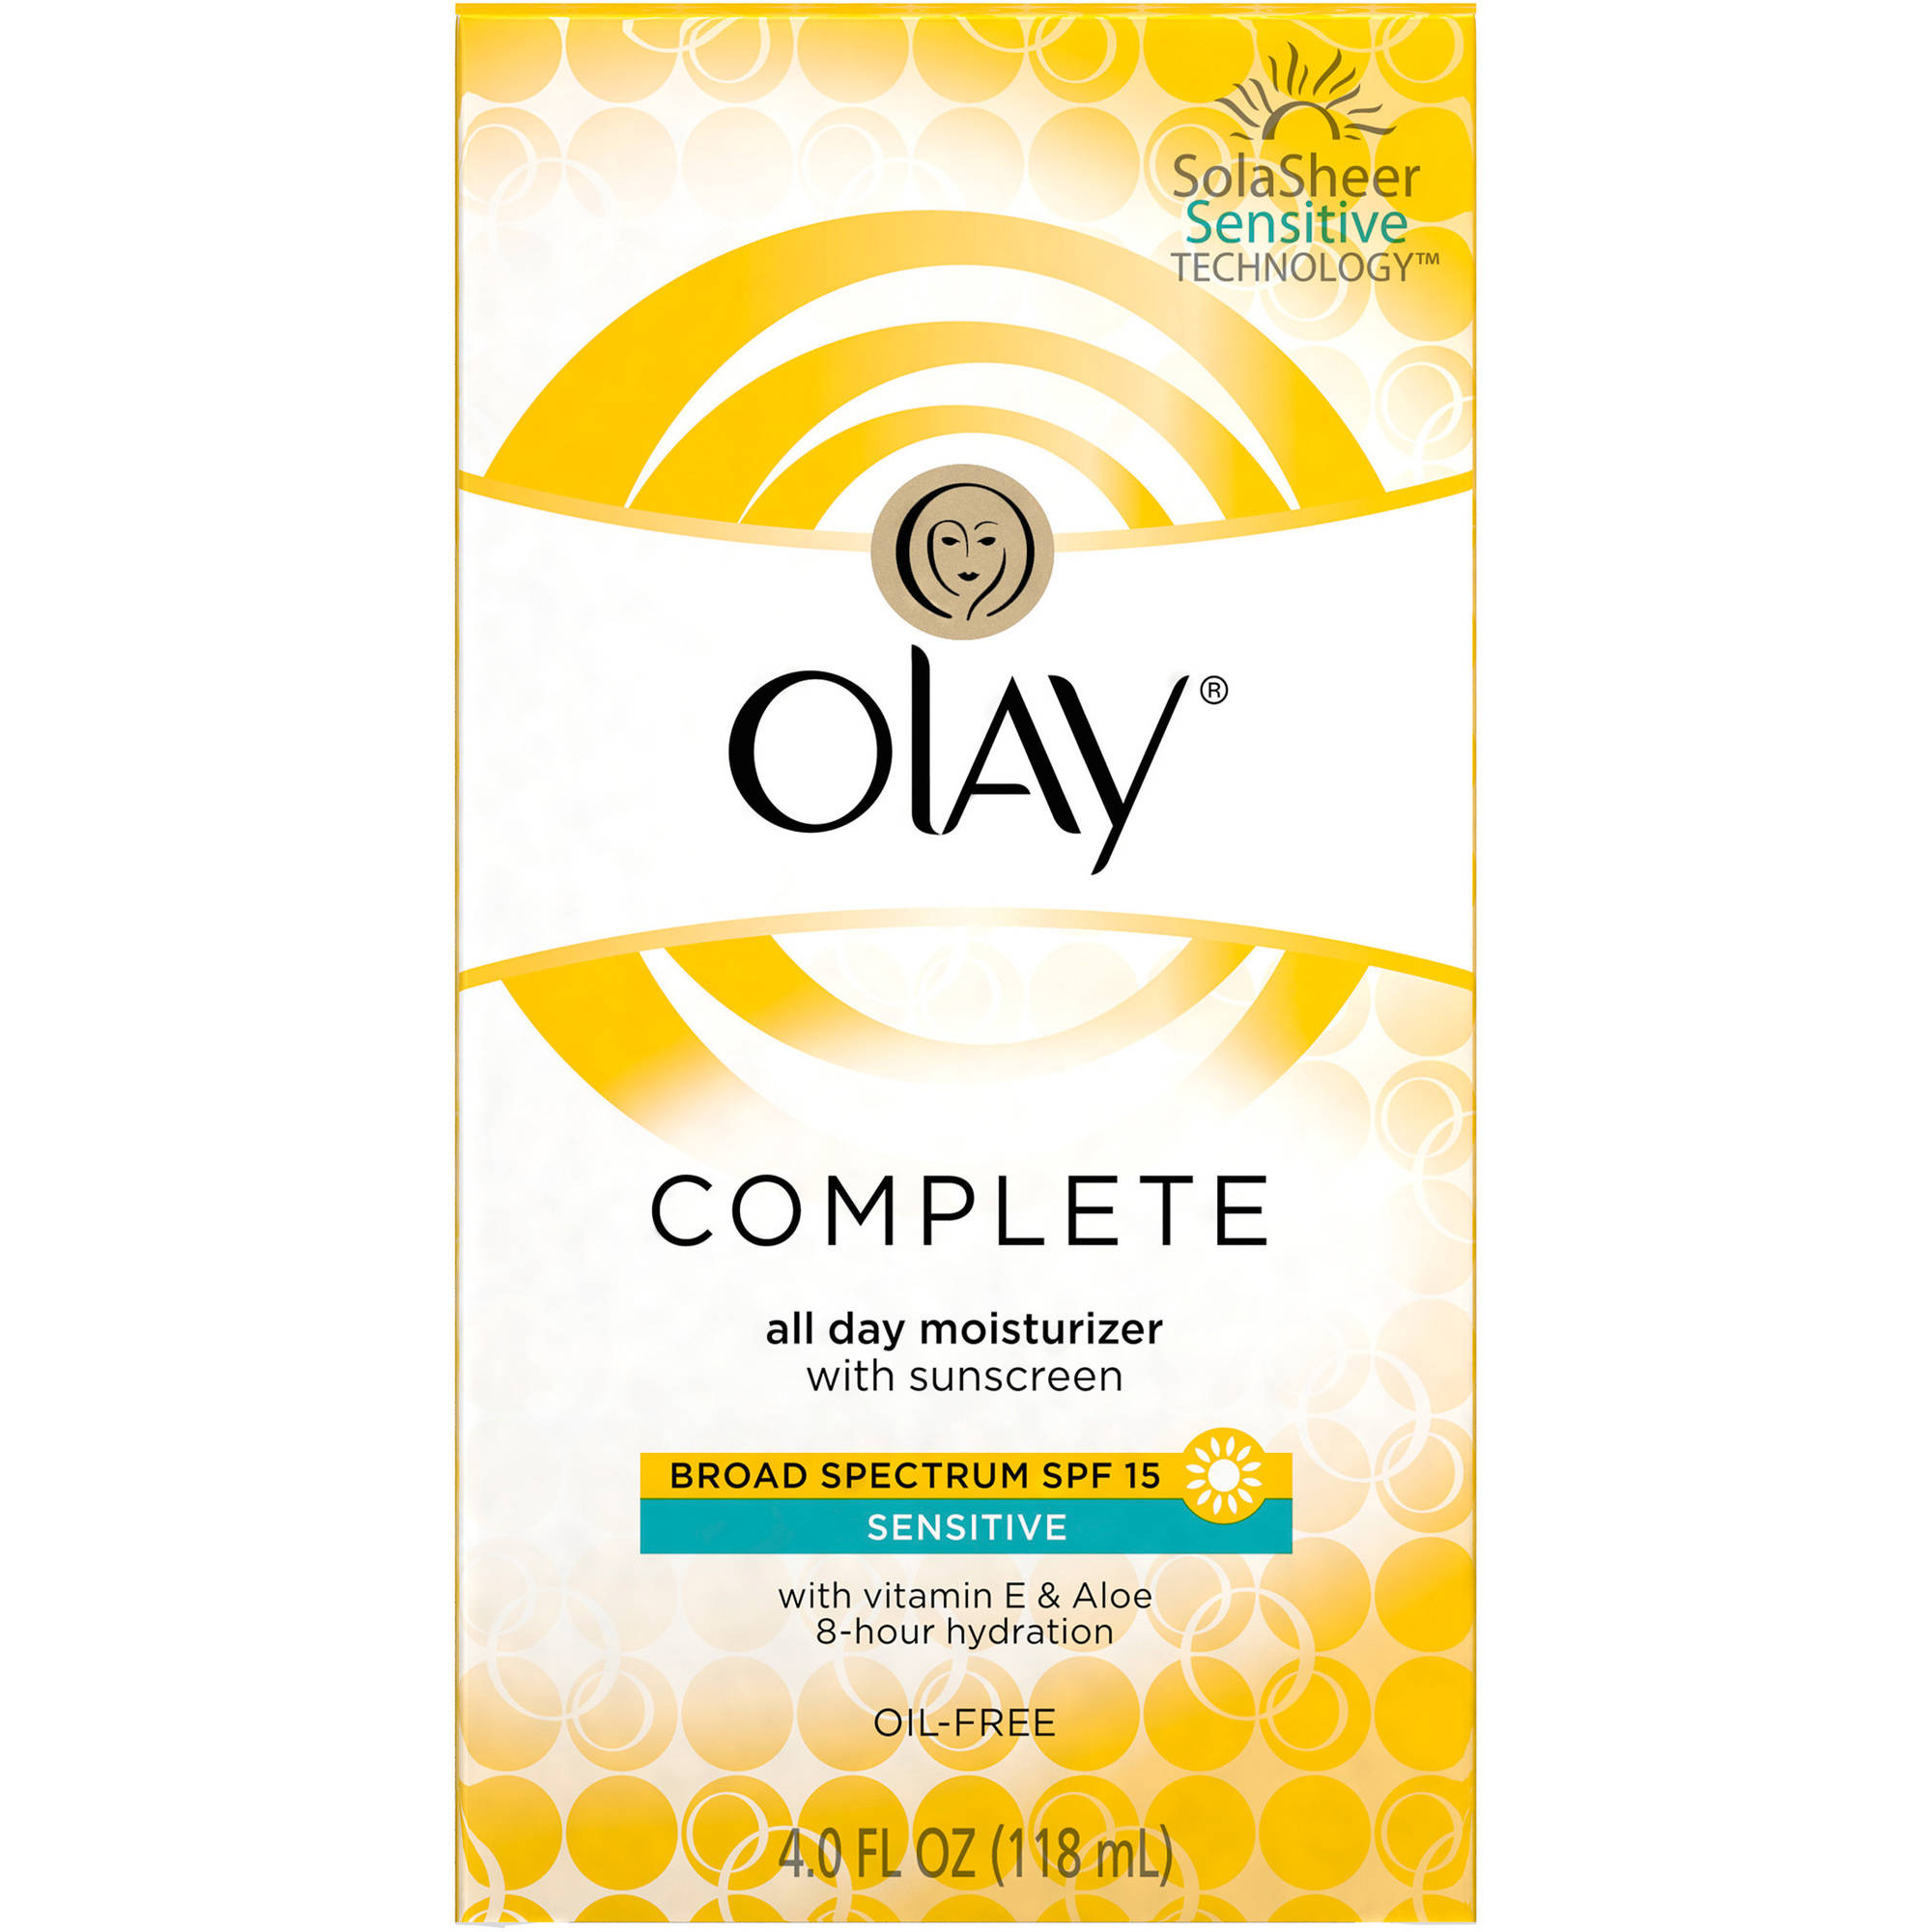 Olay Complete All Day Face Moisturizer with Sunscreen SPF 15 Sensitive Skin, 4 fl oz